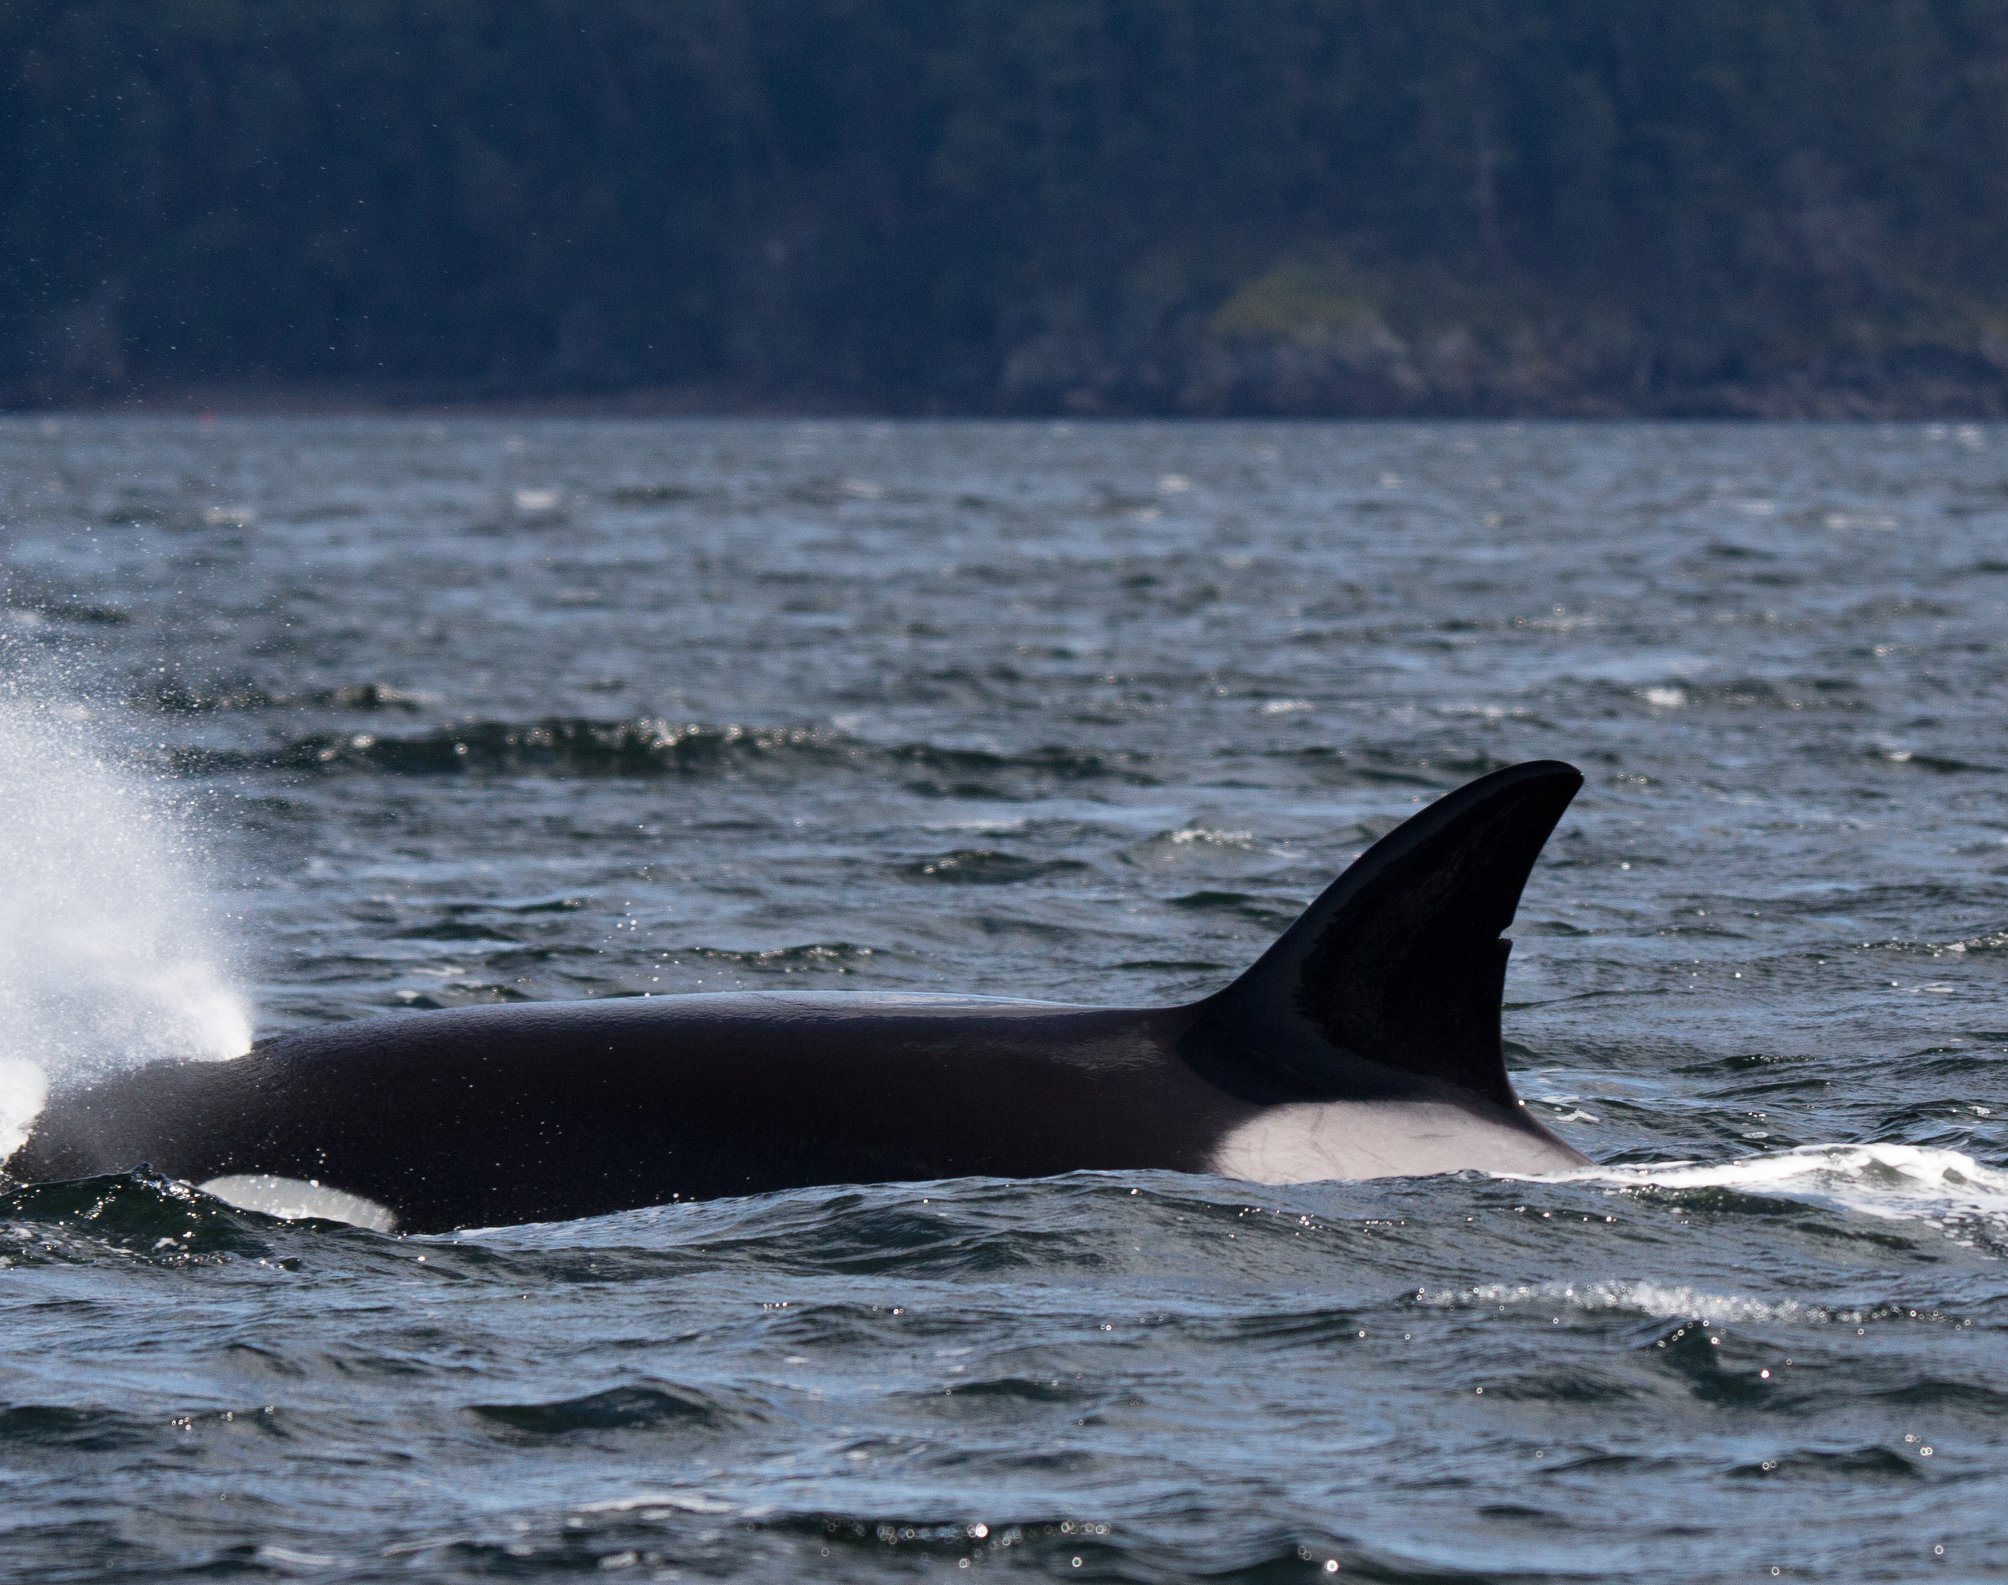 T37A surfaces after a successful seal hunt.Photo by Natalie Reichenbacher, cropped and zoomed.